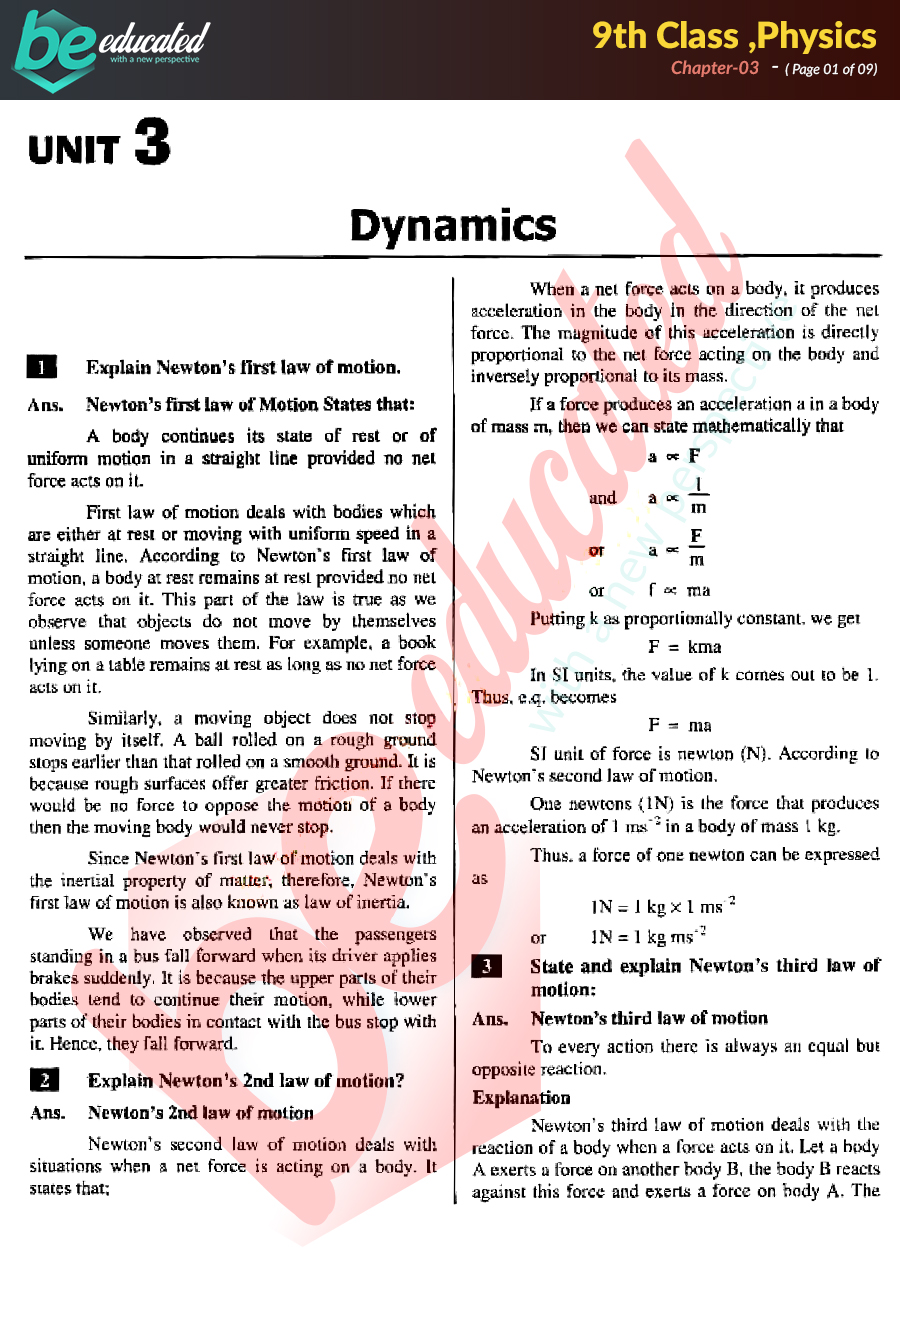 Chapter 3 Physics 9th Class Notes - Matric Part 1 Notes